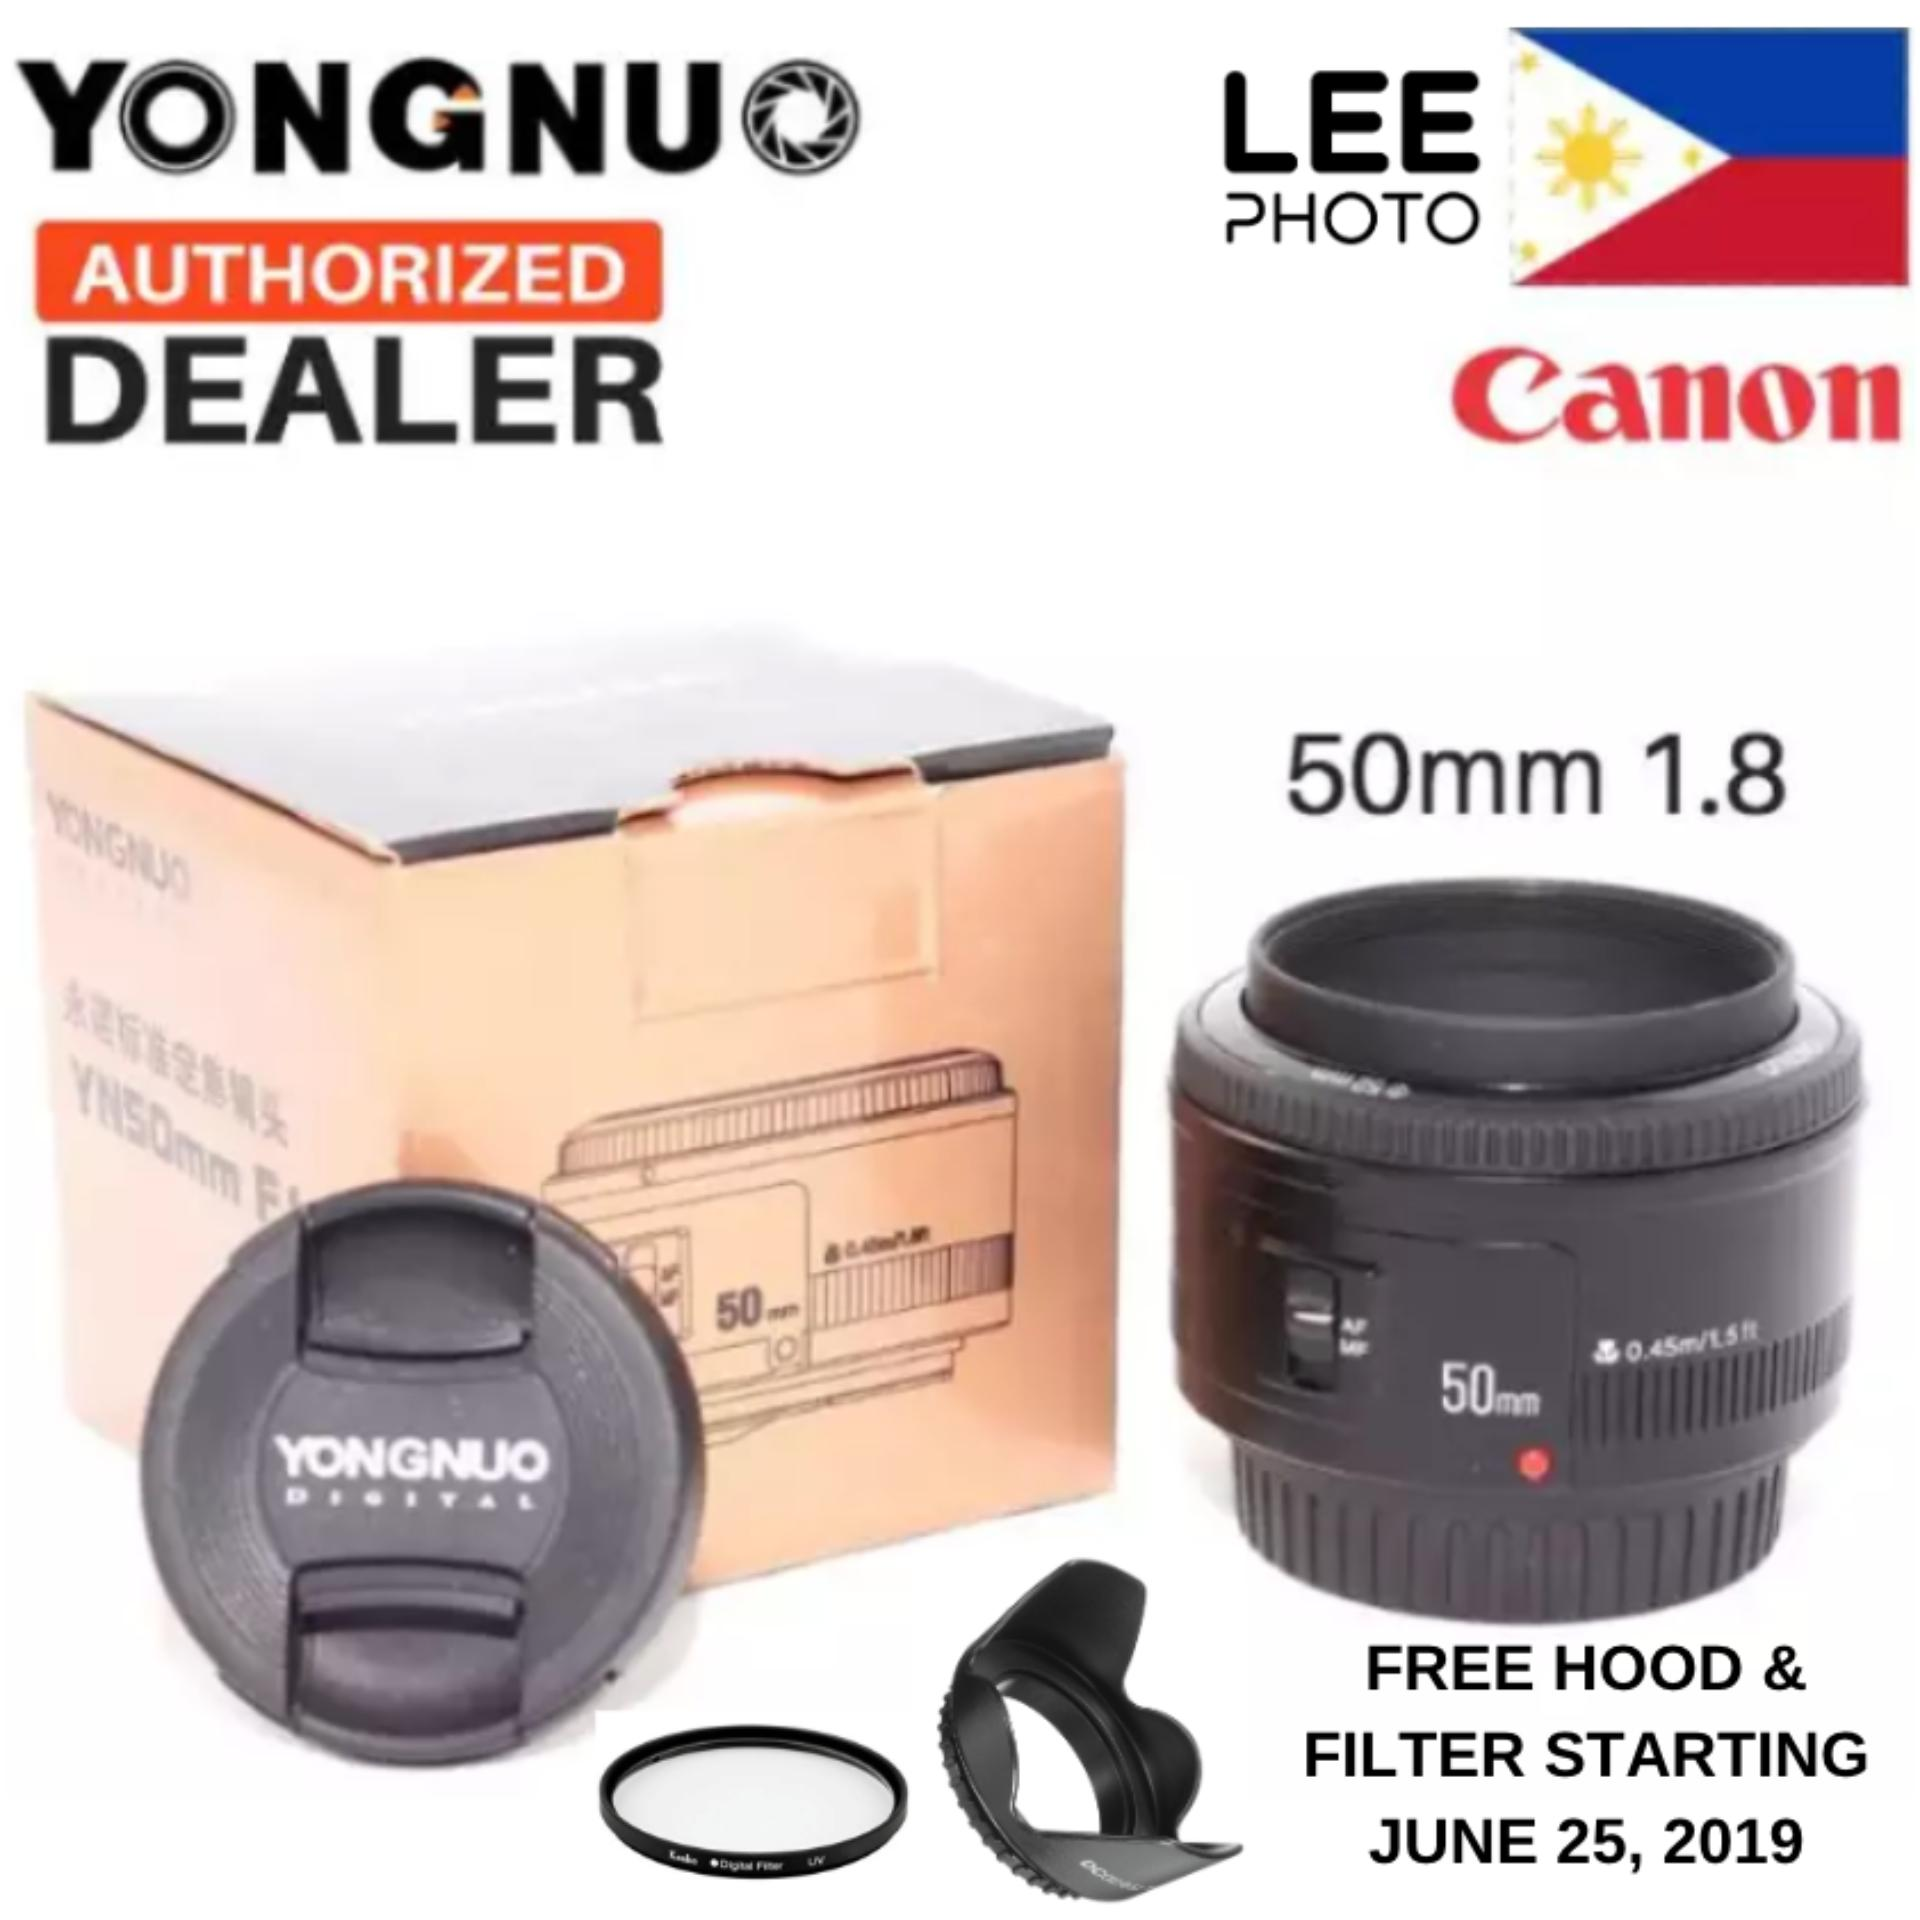 Yongnuo 50MM YN50MM 50mm f/1 8 Prime Lens for Canon EF Auto Focus (Lee  Photo) 50mm f1 8